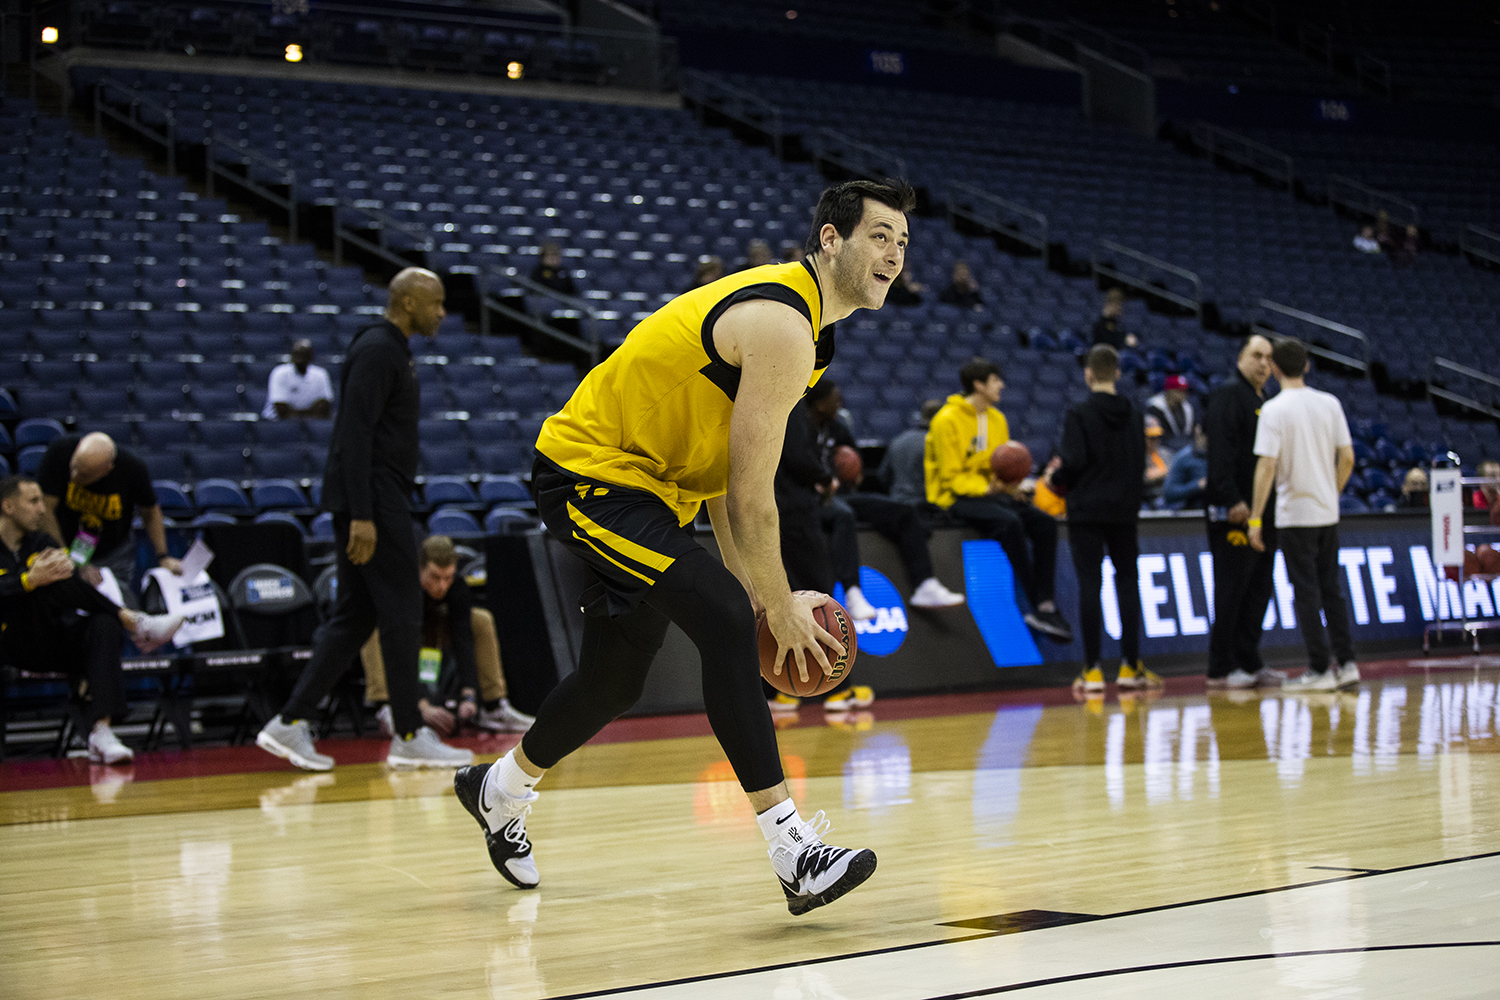 Iowa forward Ryan Kriener dribbles the ball during the Iowa basketball practice at Nationwide Arena in Columbus, Ohio on Thursday, March 21, 2019. The Hawkeyes will compete against the Cincinnati Bearcats tomorrow in the NCAA Tournament.